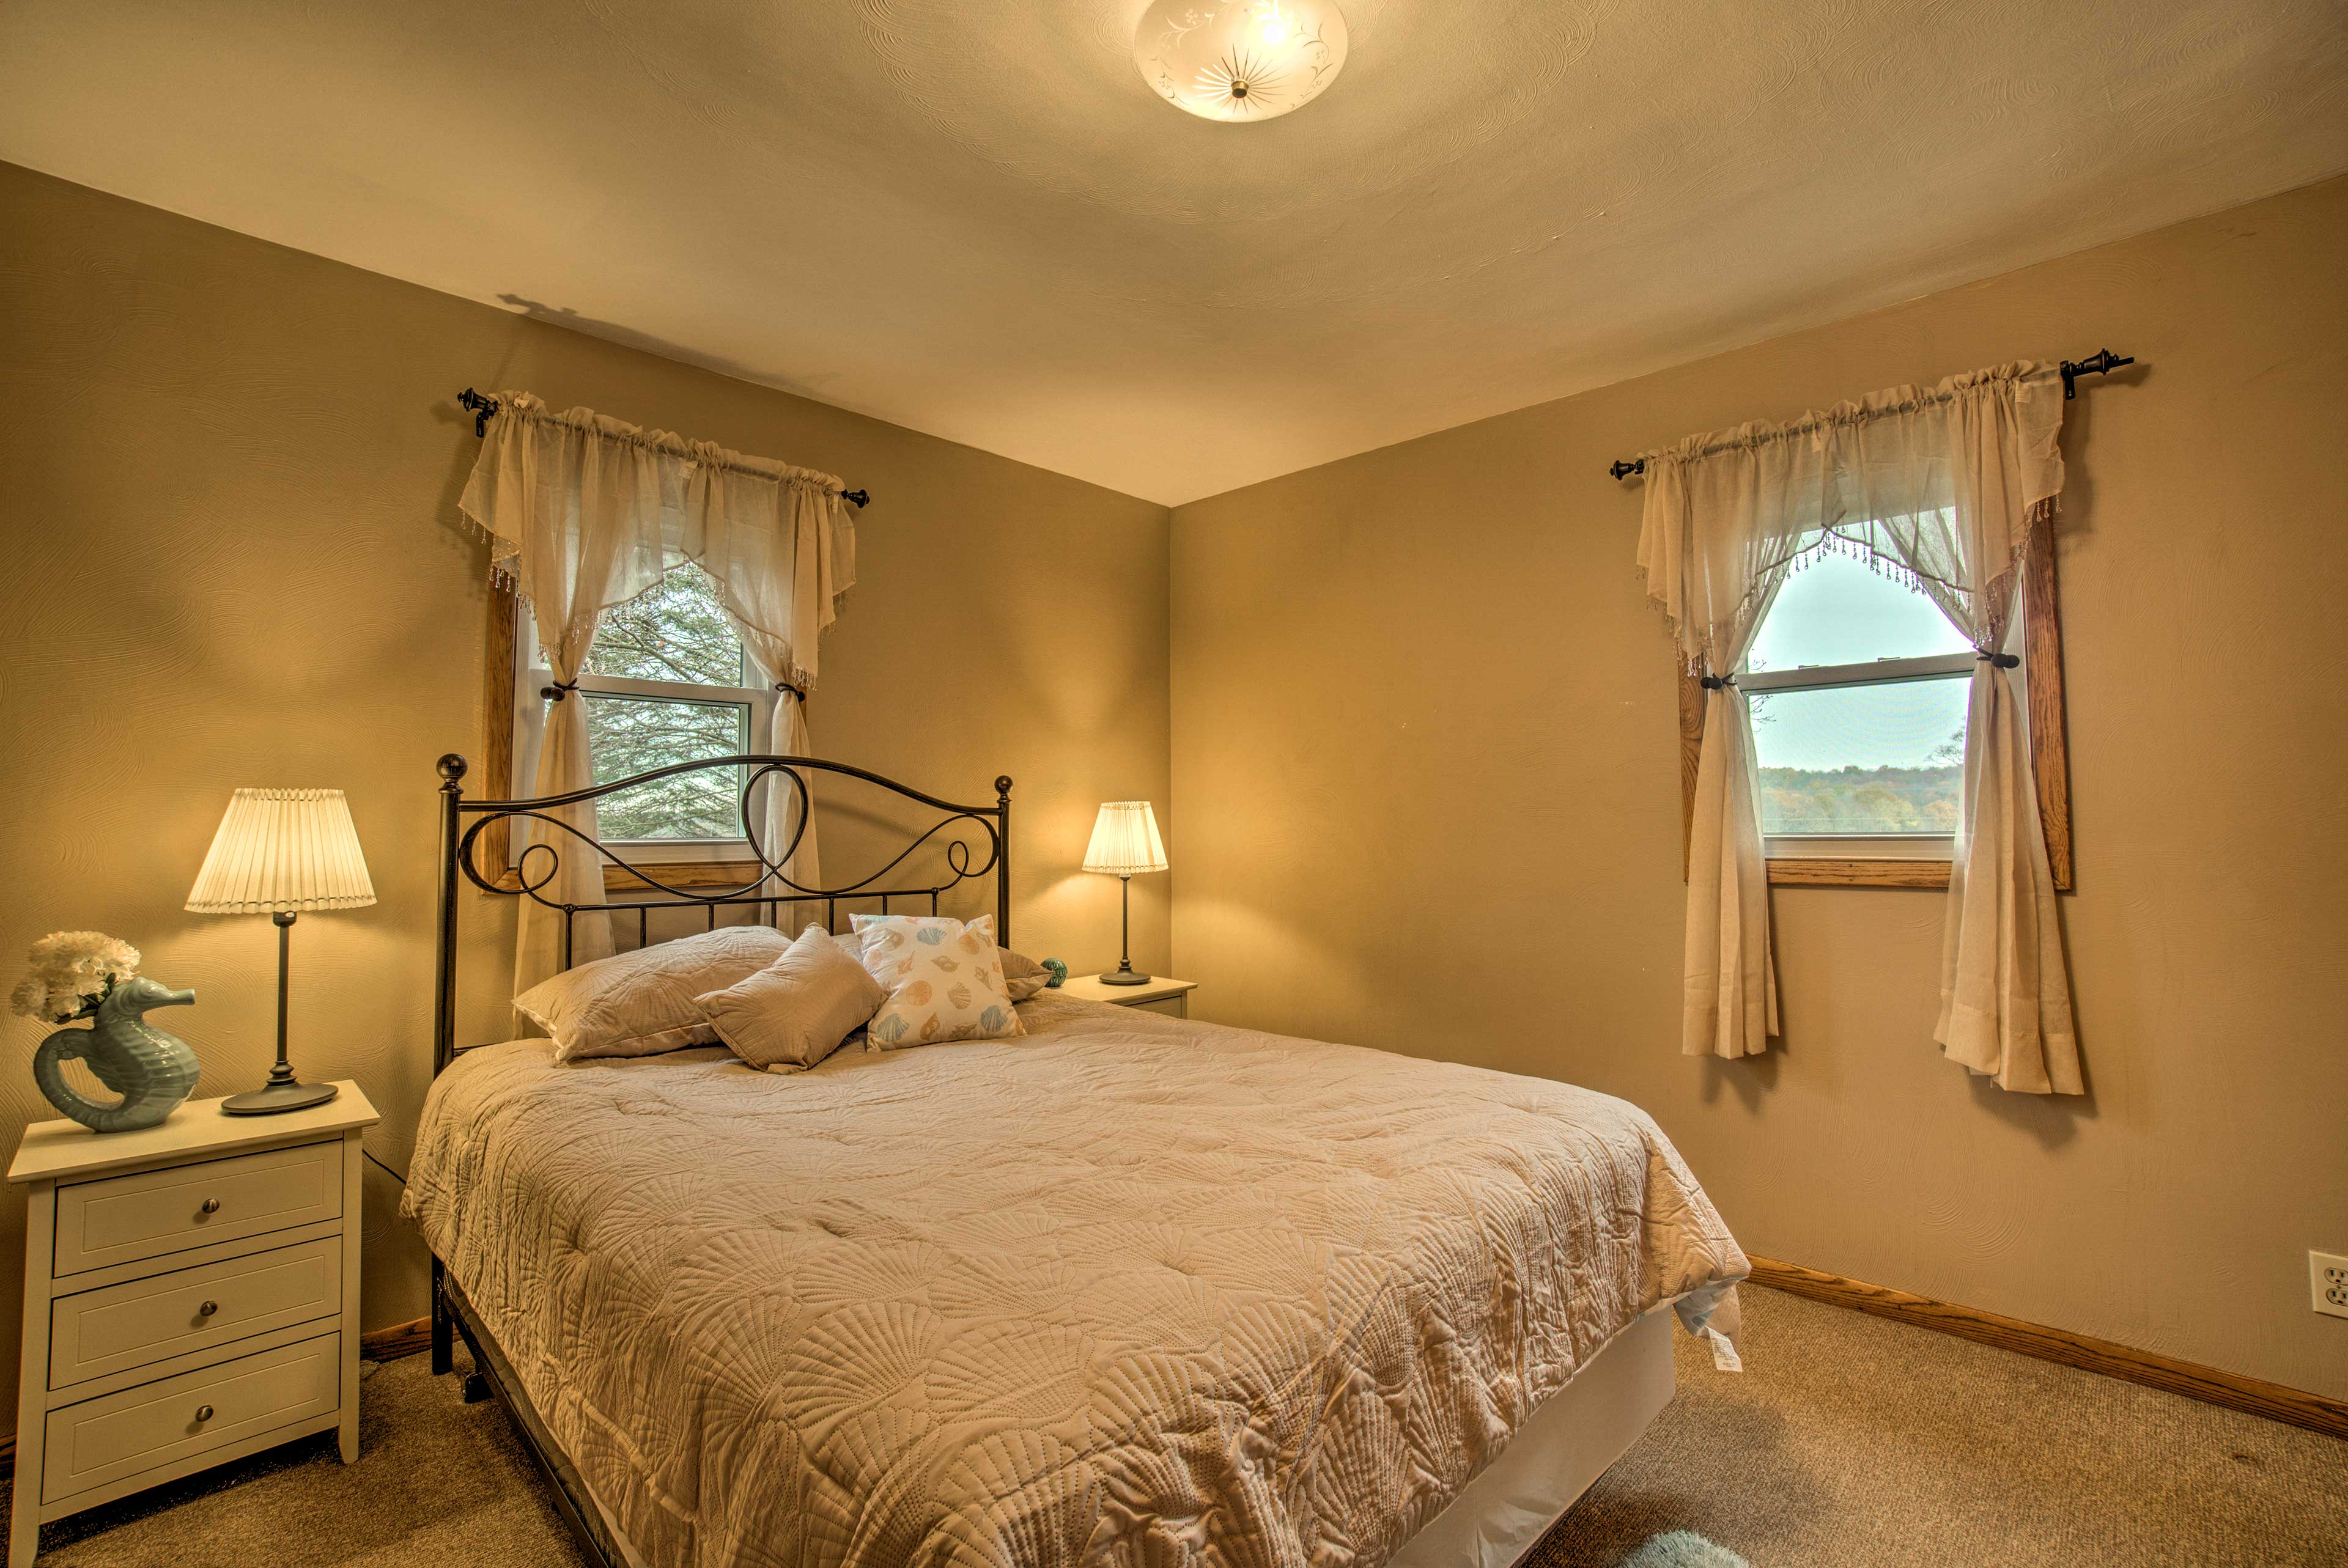 The first bedroom features a queen bed for 2.